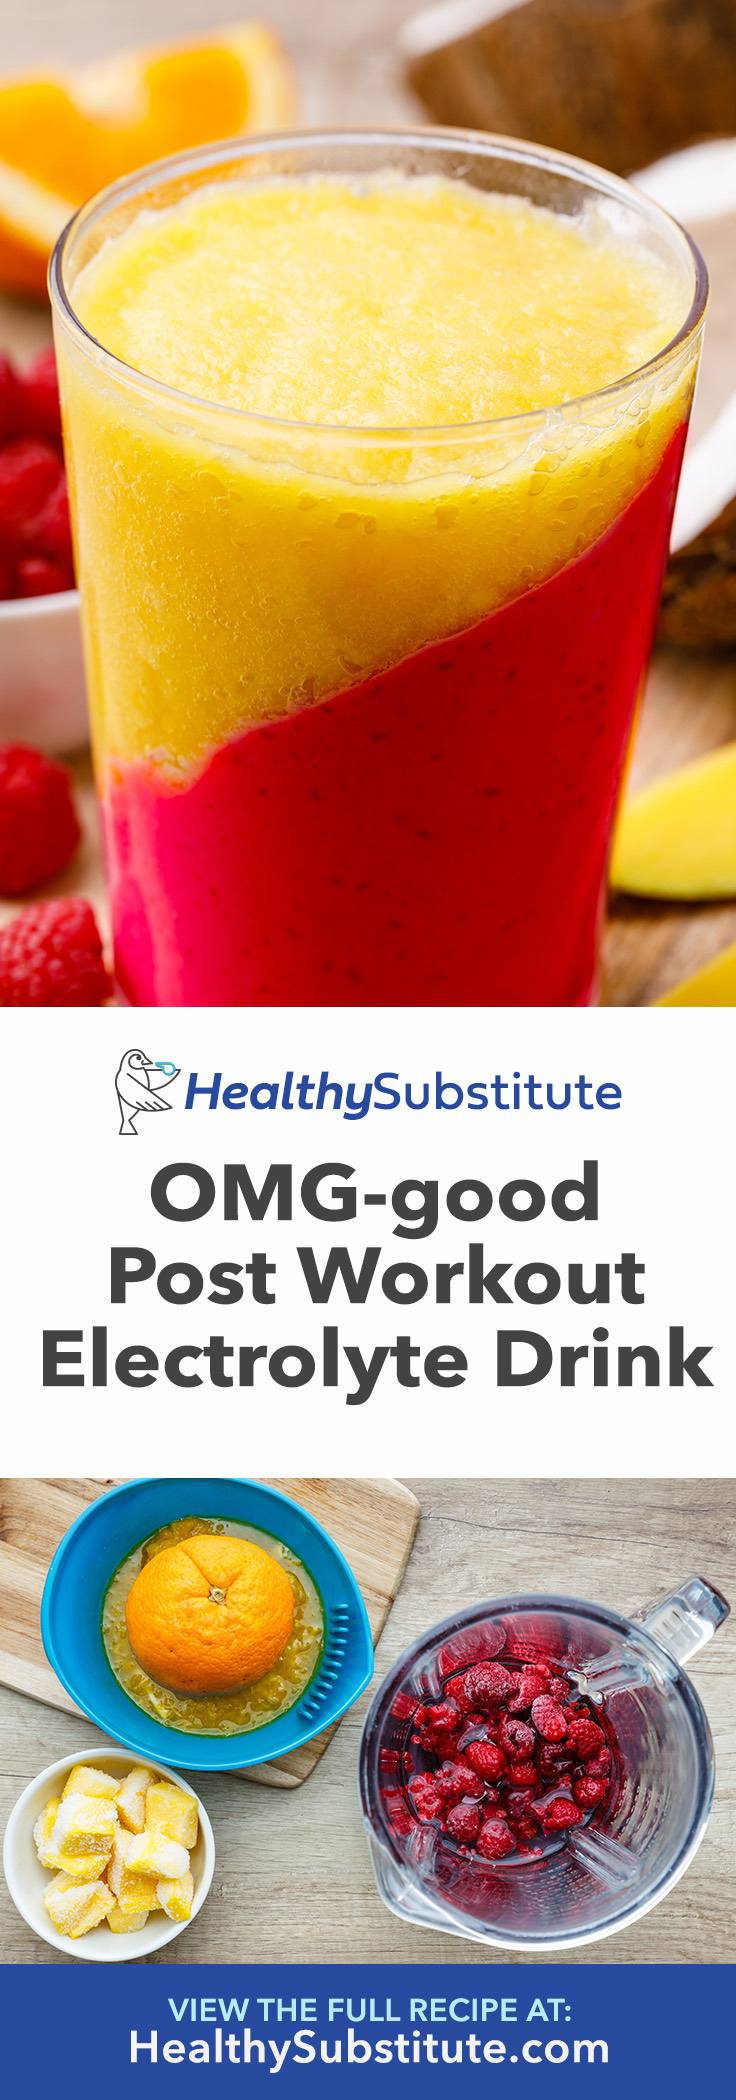 Raspberry Mango Post-Workout Drink to Recover Electrolytes